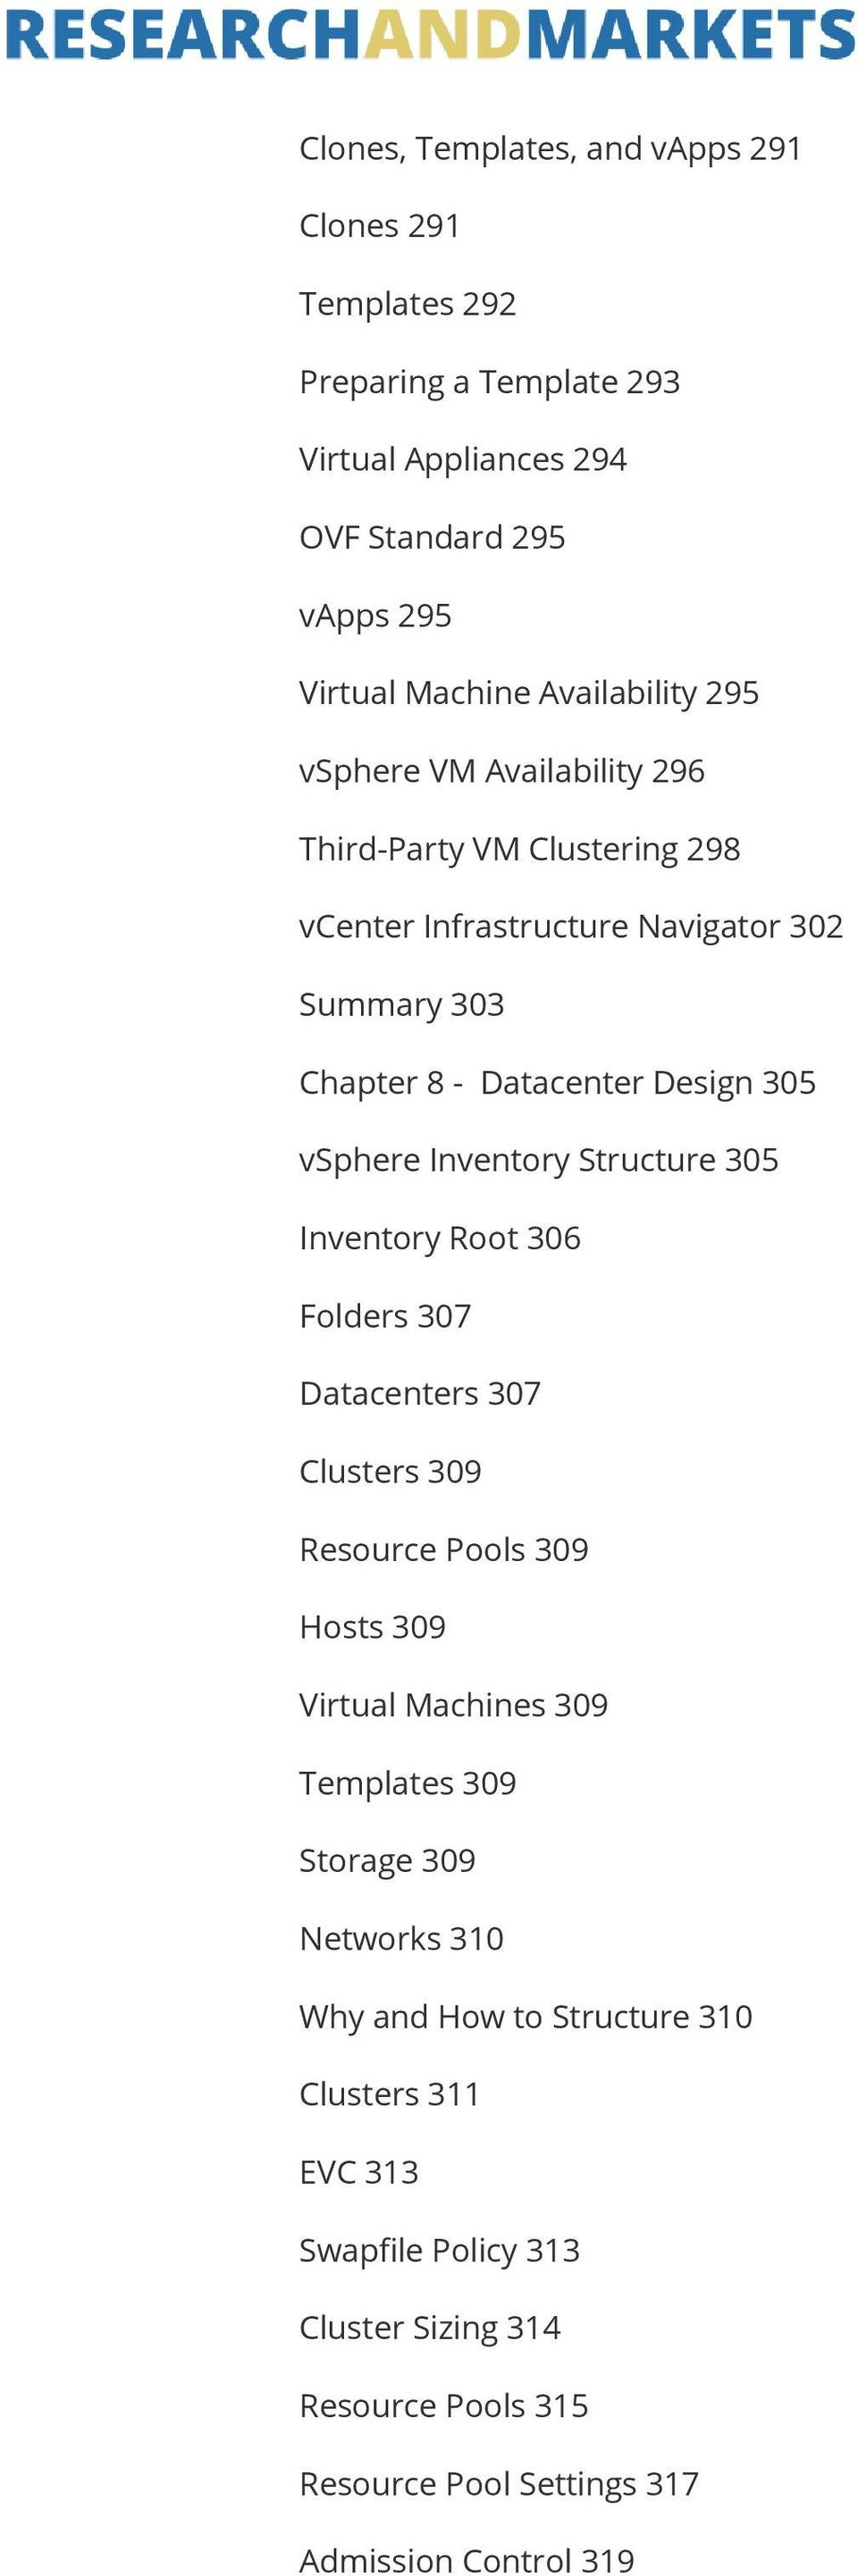 vsphere Inventory Structure 305 Inventory Root 306 Folders 307 Datacenters 307 Clusters 309 Resource Pools 309 Hosts 309 Virtual Machines 309 Templates 309